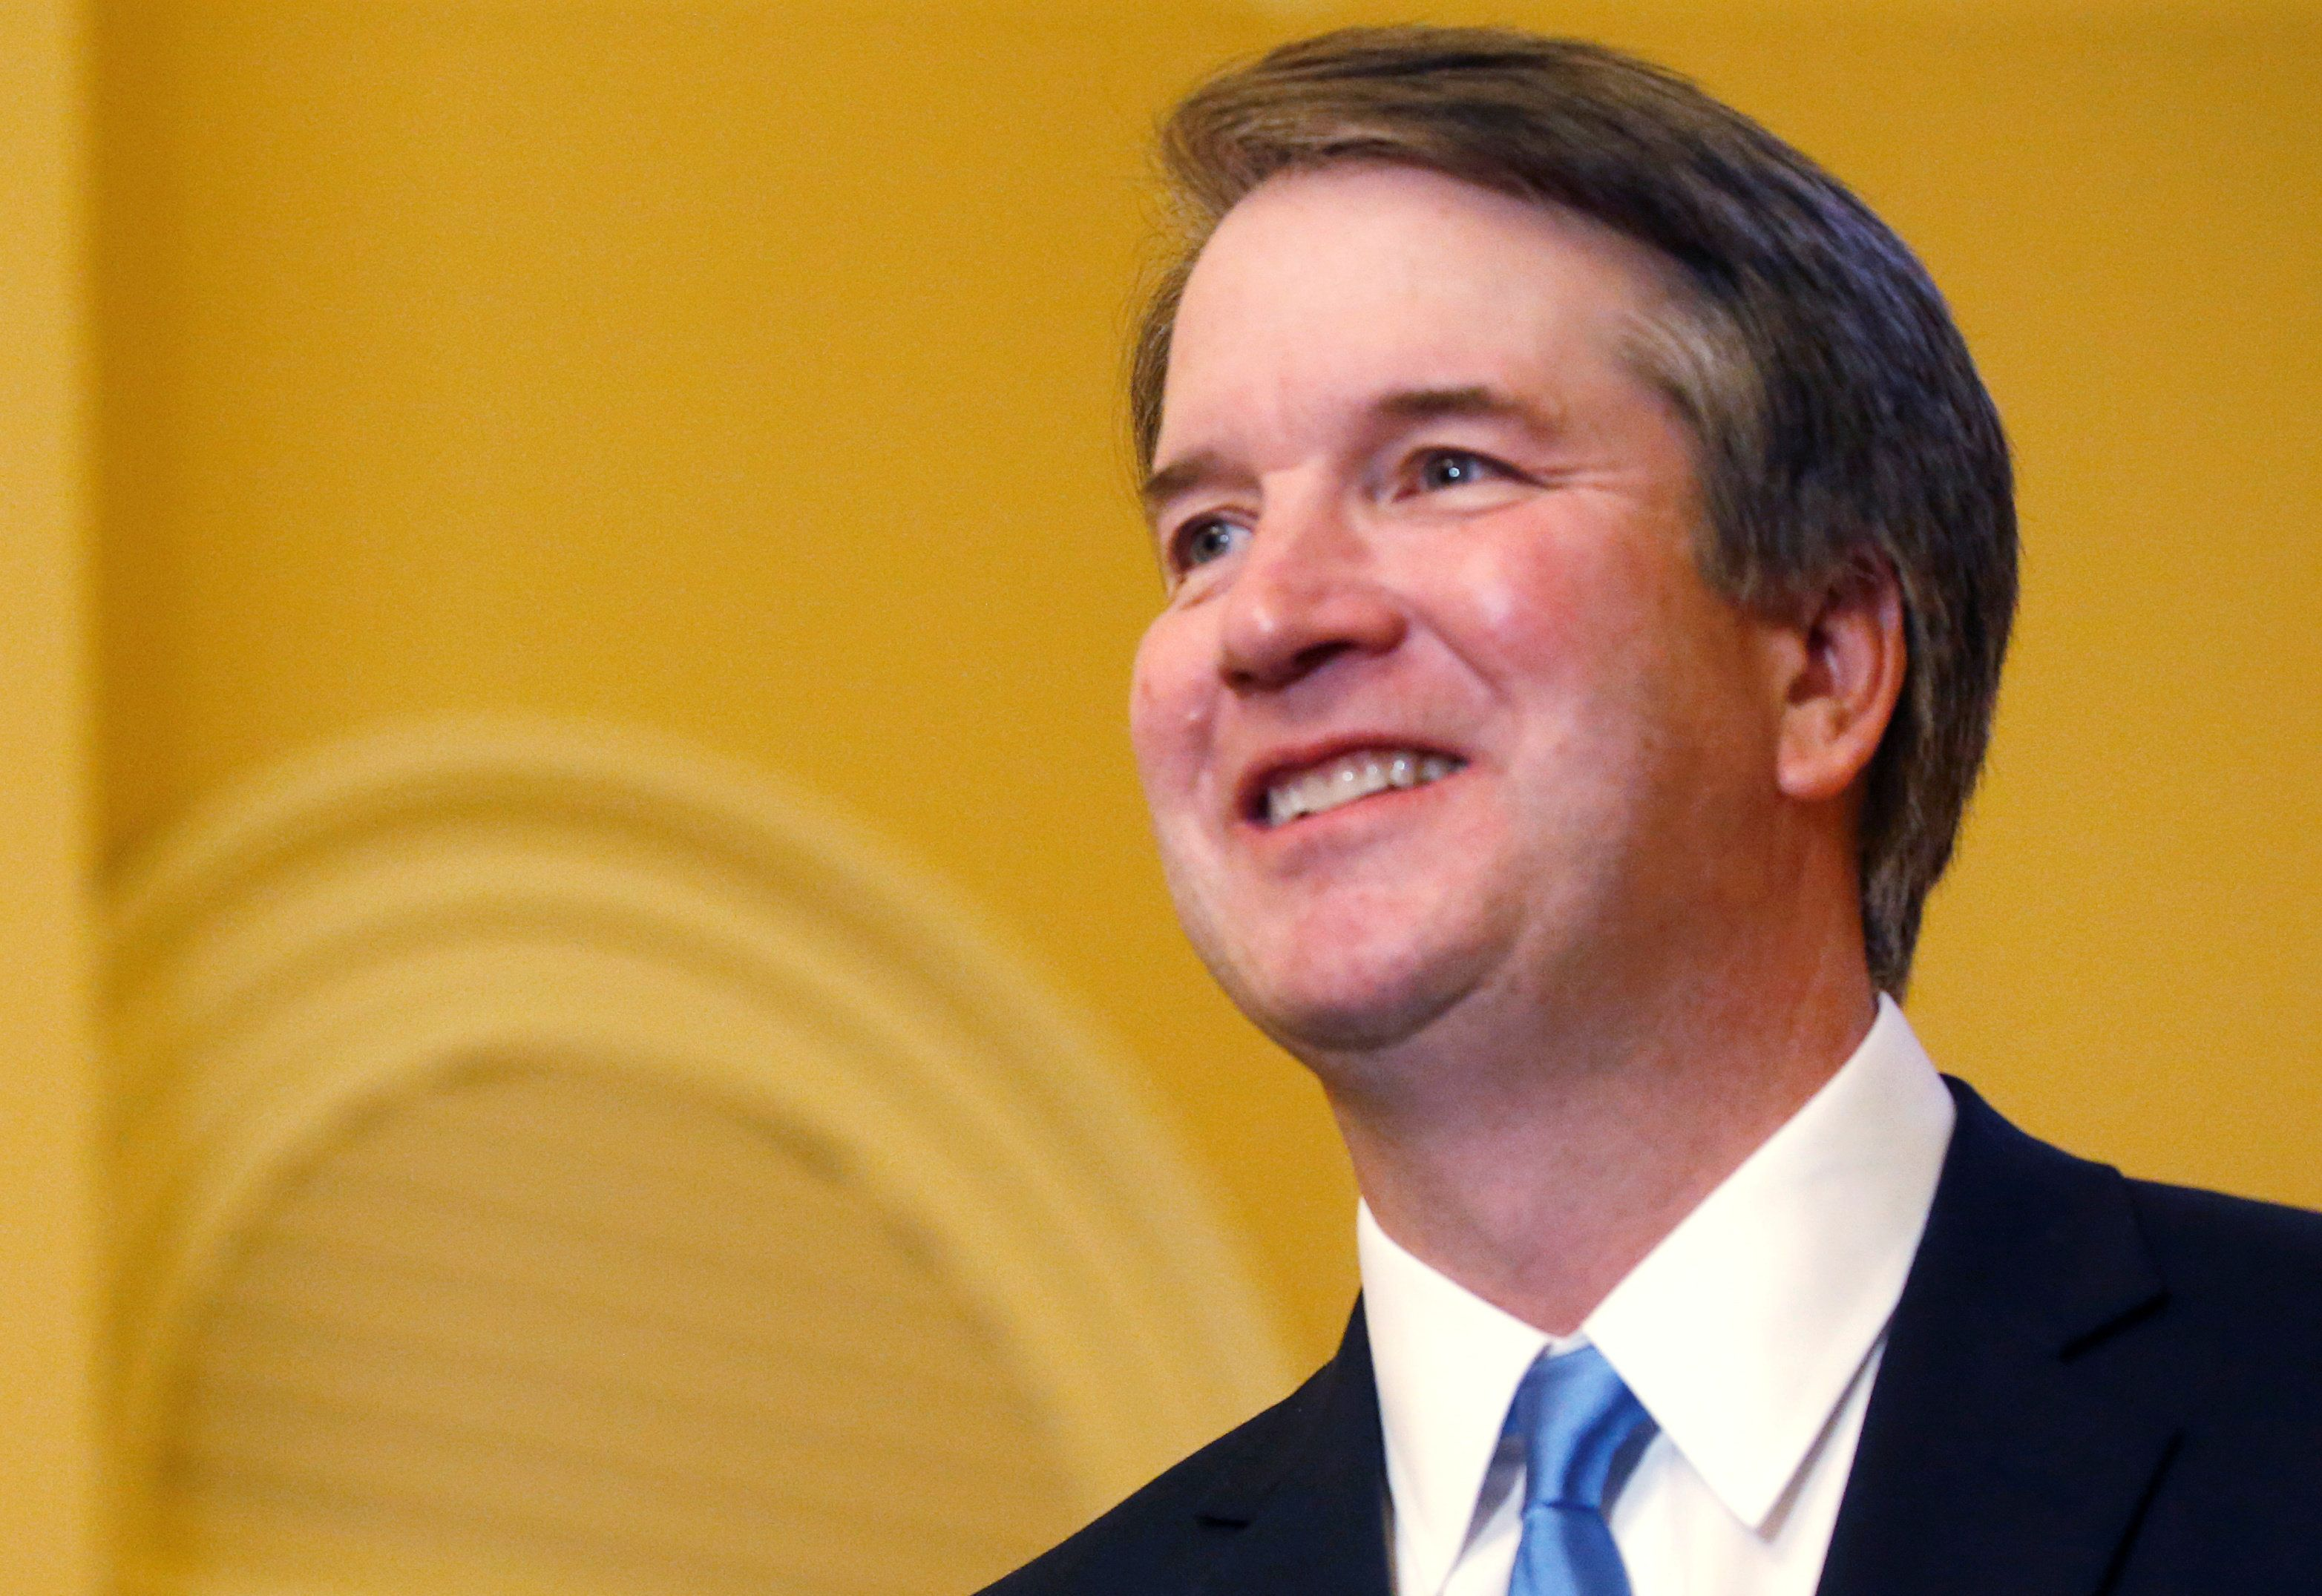 Supreme Court nominee Kavanaugh is a BIG baseball fan